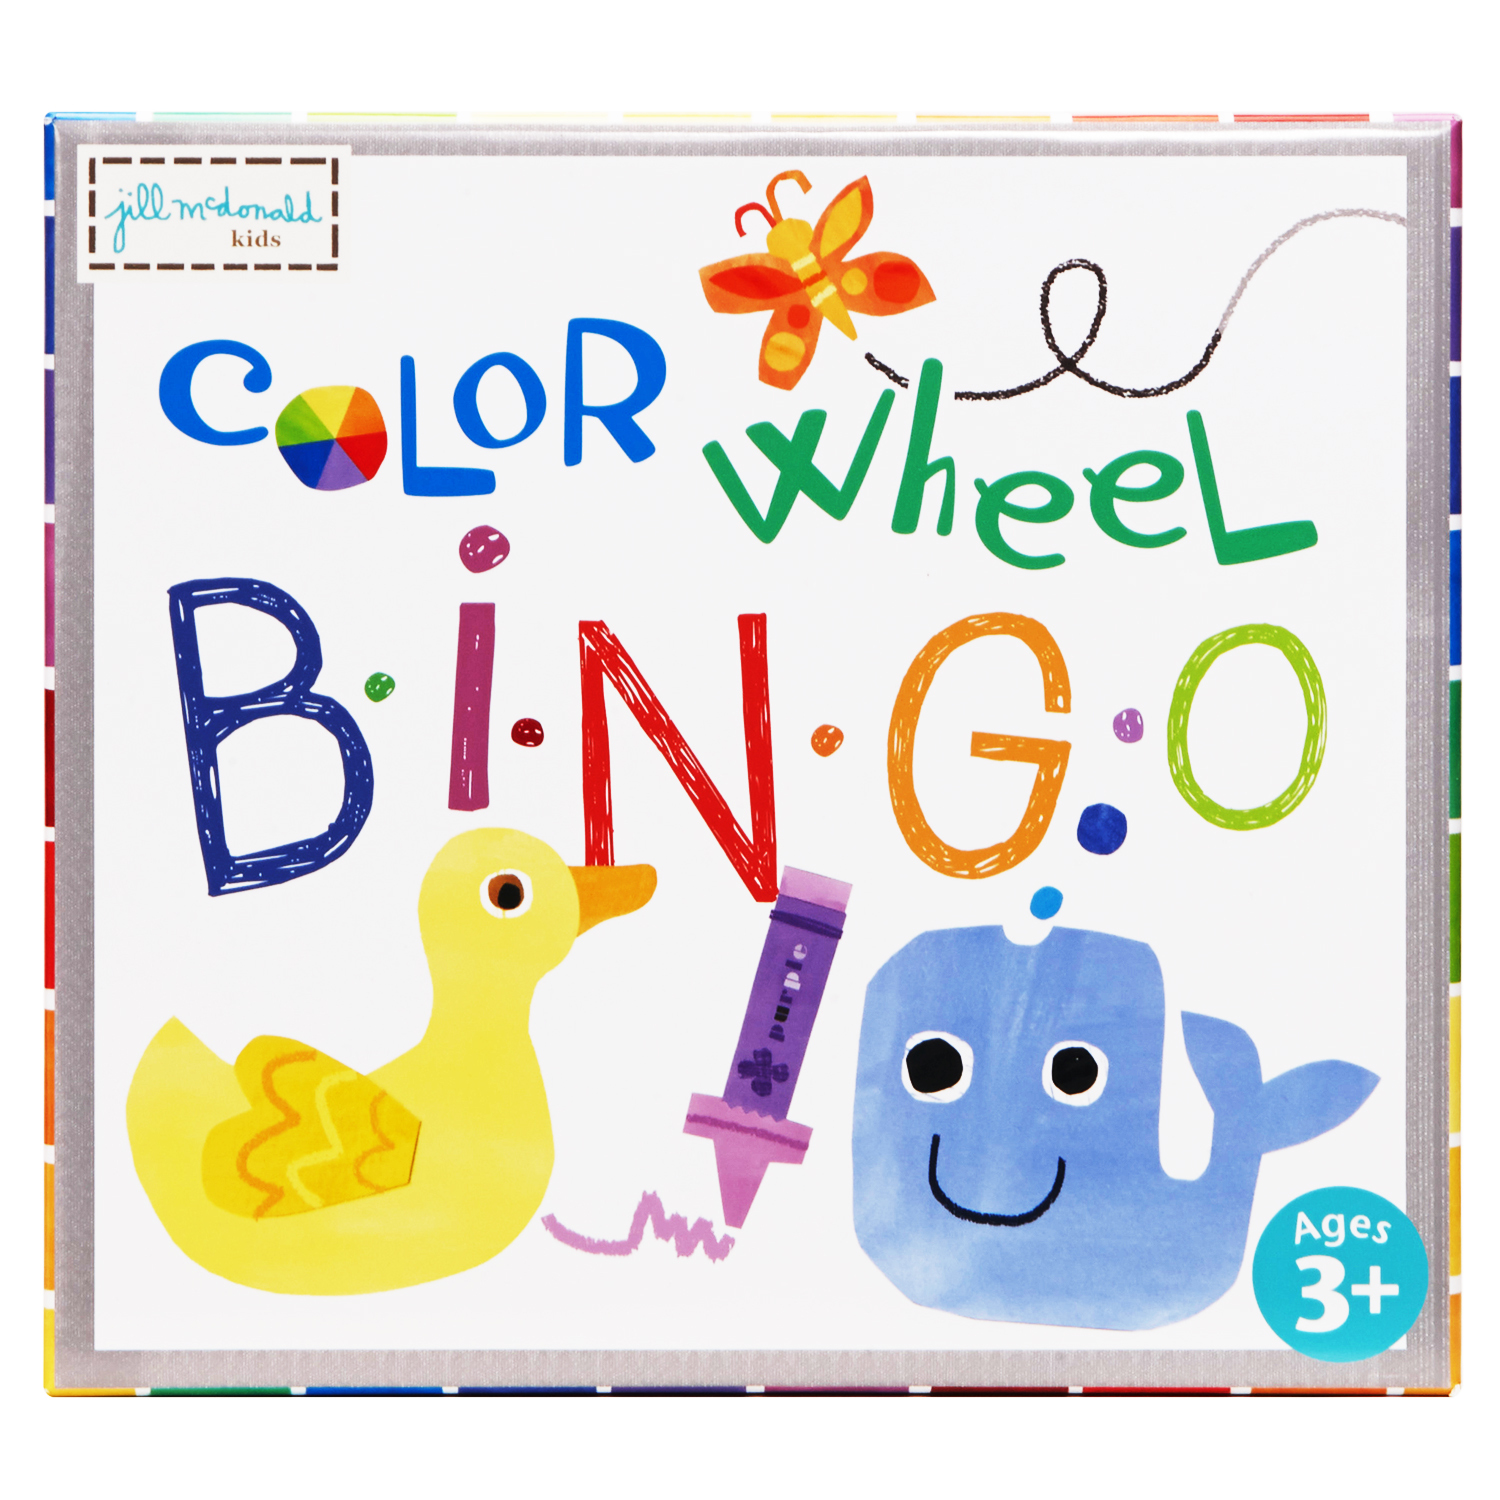 EU BJPB 13743 COLOR WHEEL PUZZLE BINGO GAME